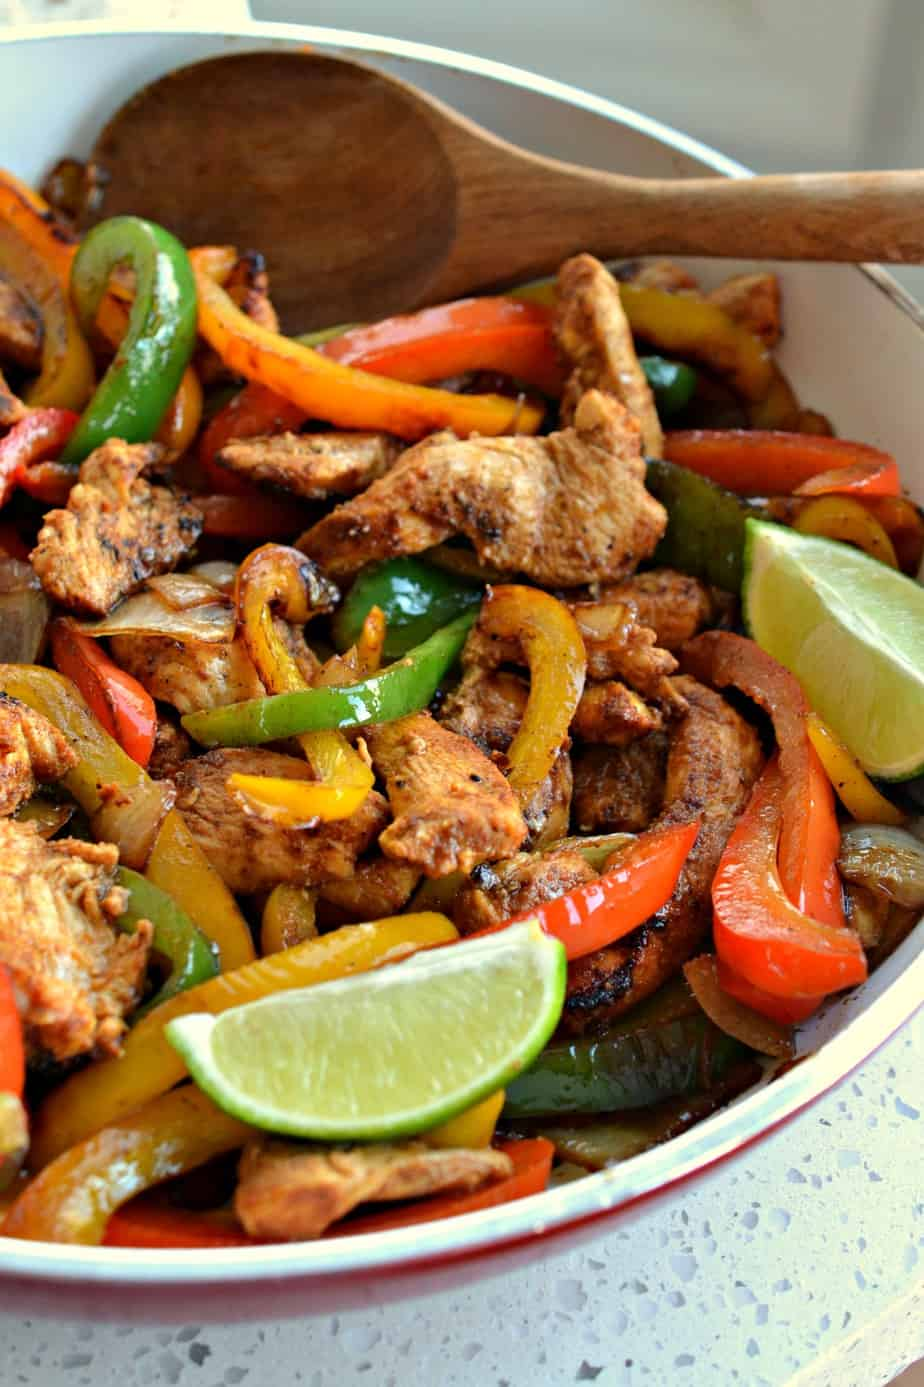 These Easy Chicken Fajitas are bursting with plenty of flavor from chili powder, garlic, smoked paprika and cumin,